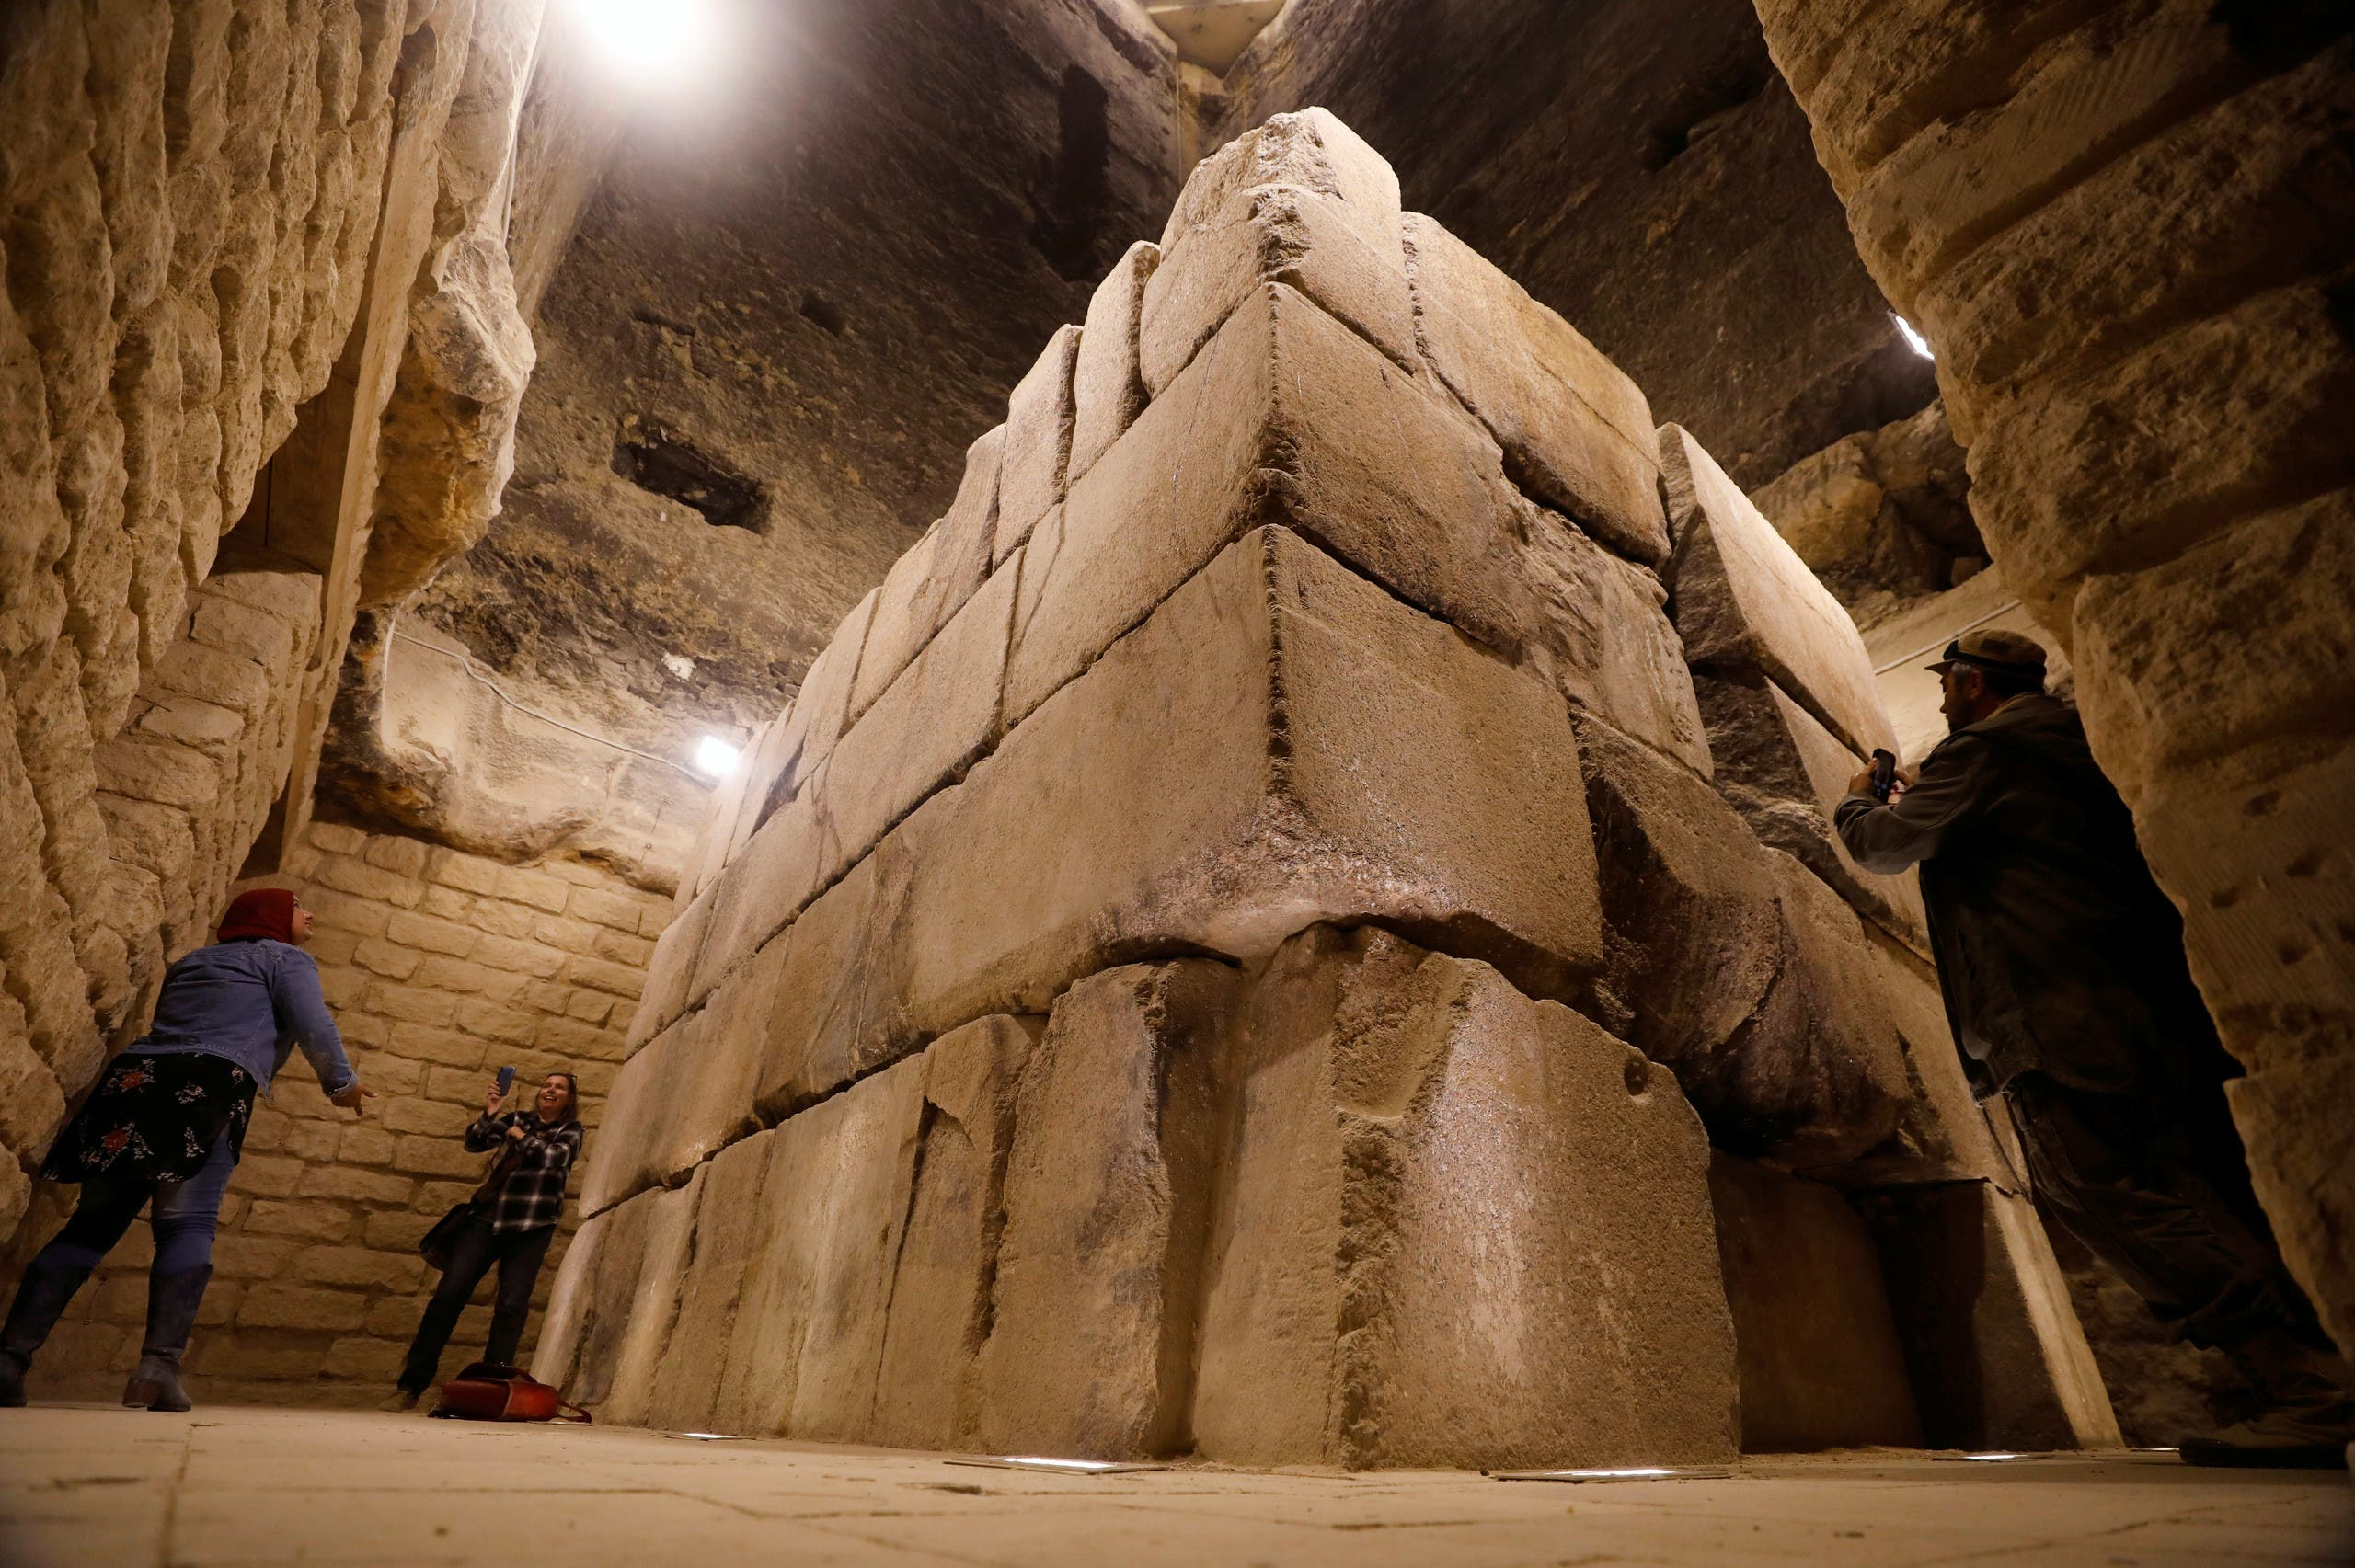 Tourists take pictures at the archaeological site of the standing step pyramid of Saqqara after its renovation, south of Cairo, Egypt March 5, 2020. (Reuters)